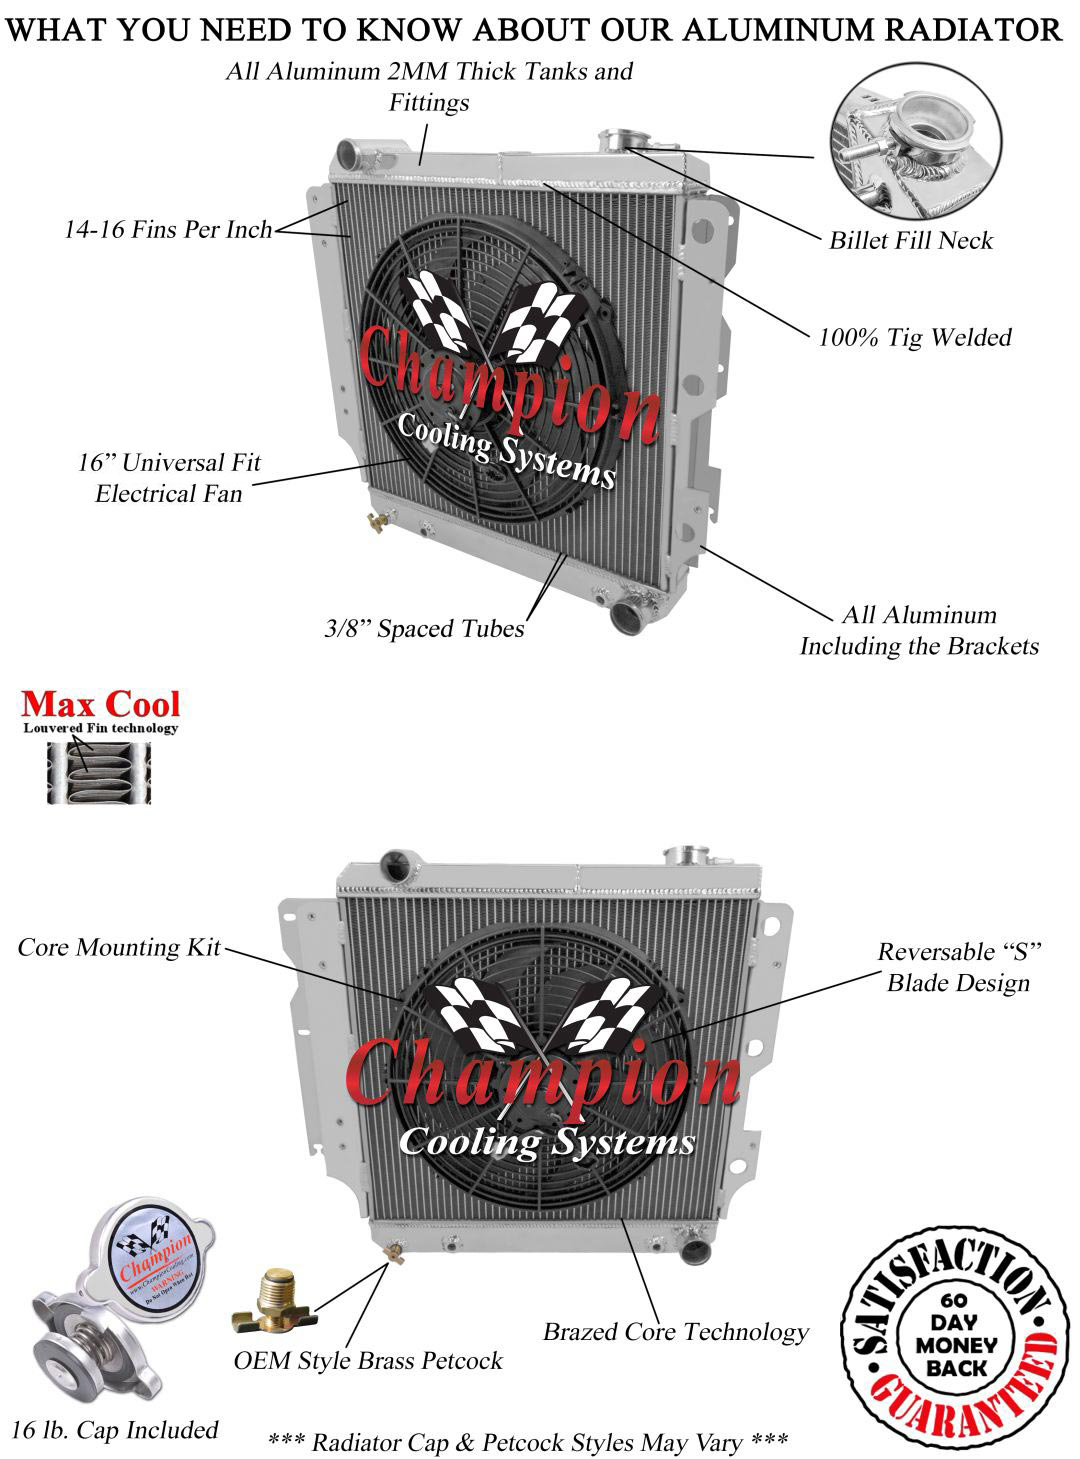 https://www.championcooling.com/photos/Photos%20White/With%20Fans/Combos/8101/8101_fancombo_white_Diagram_Champion.jpg